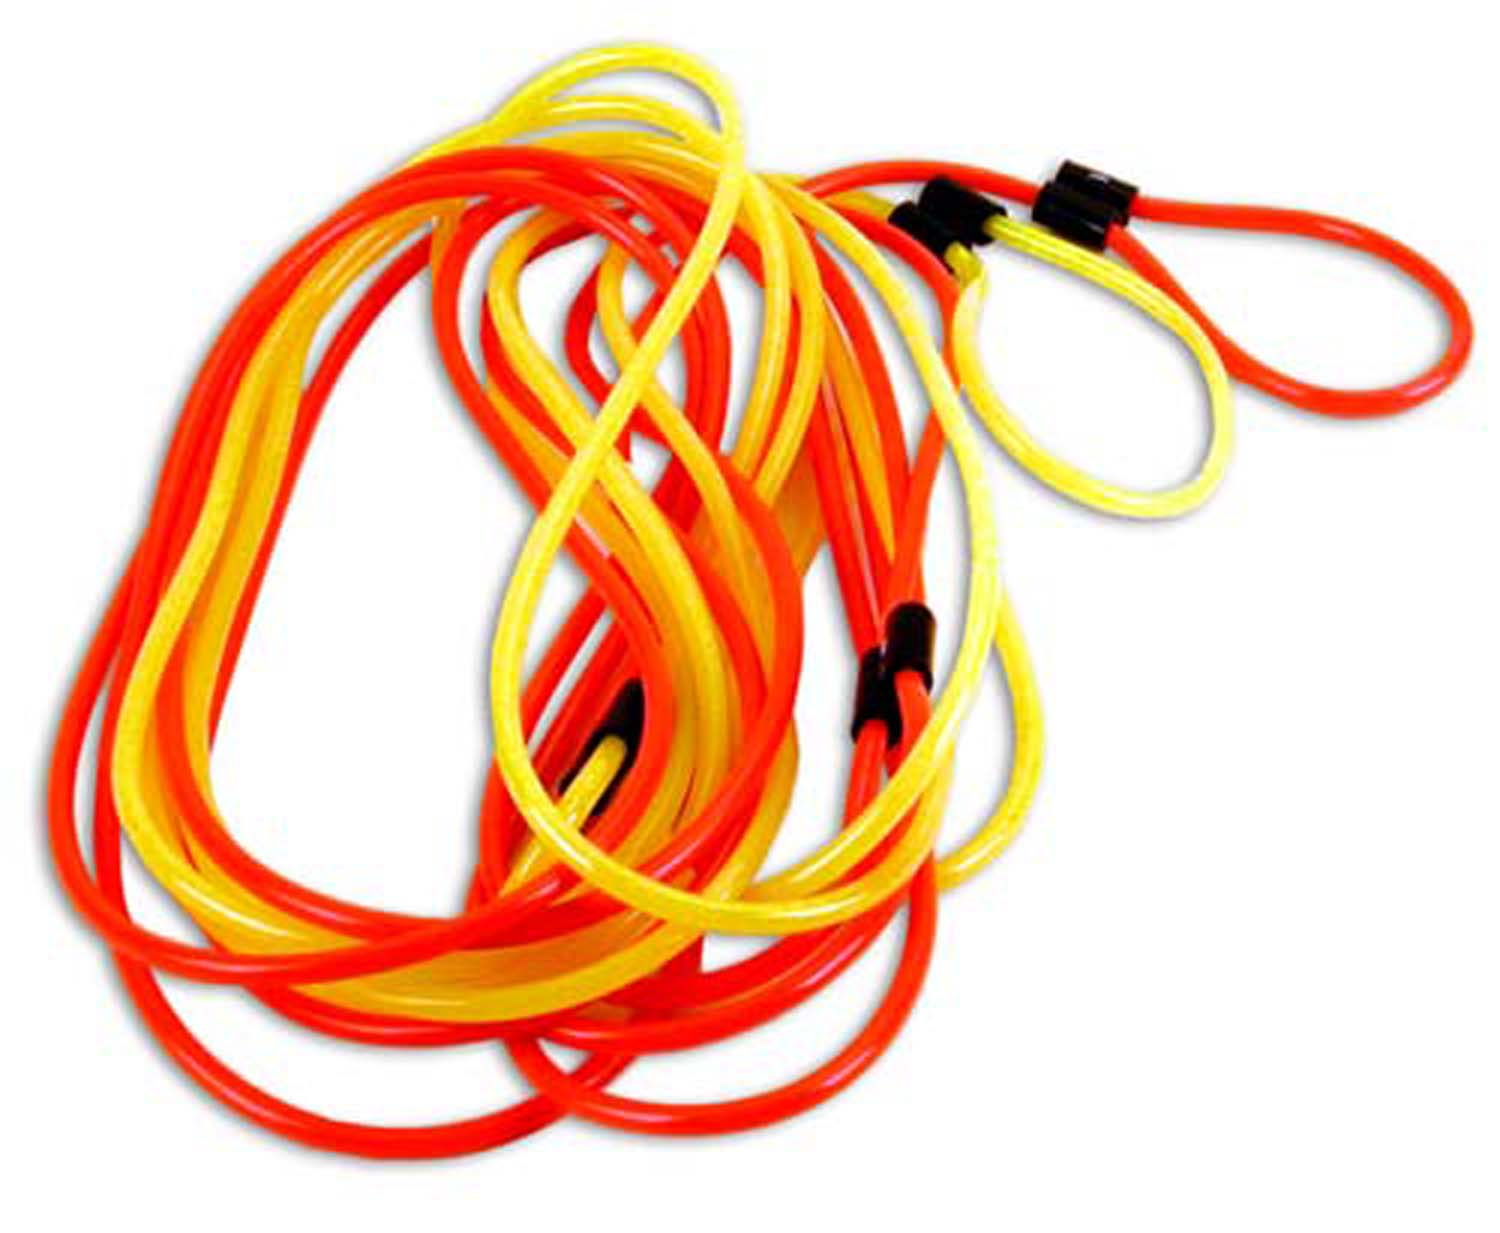 Old fashioned jump rope rhymes 5